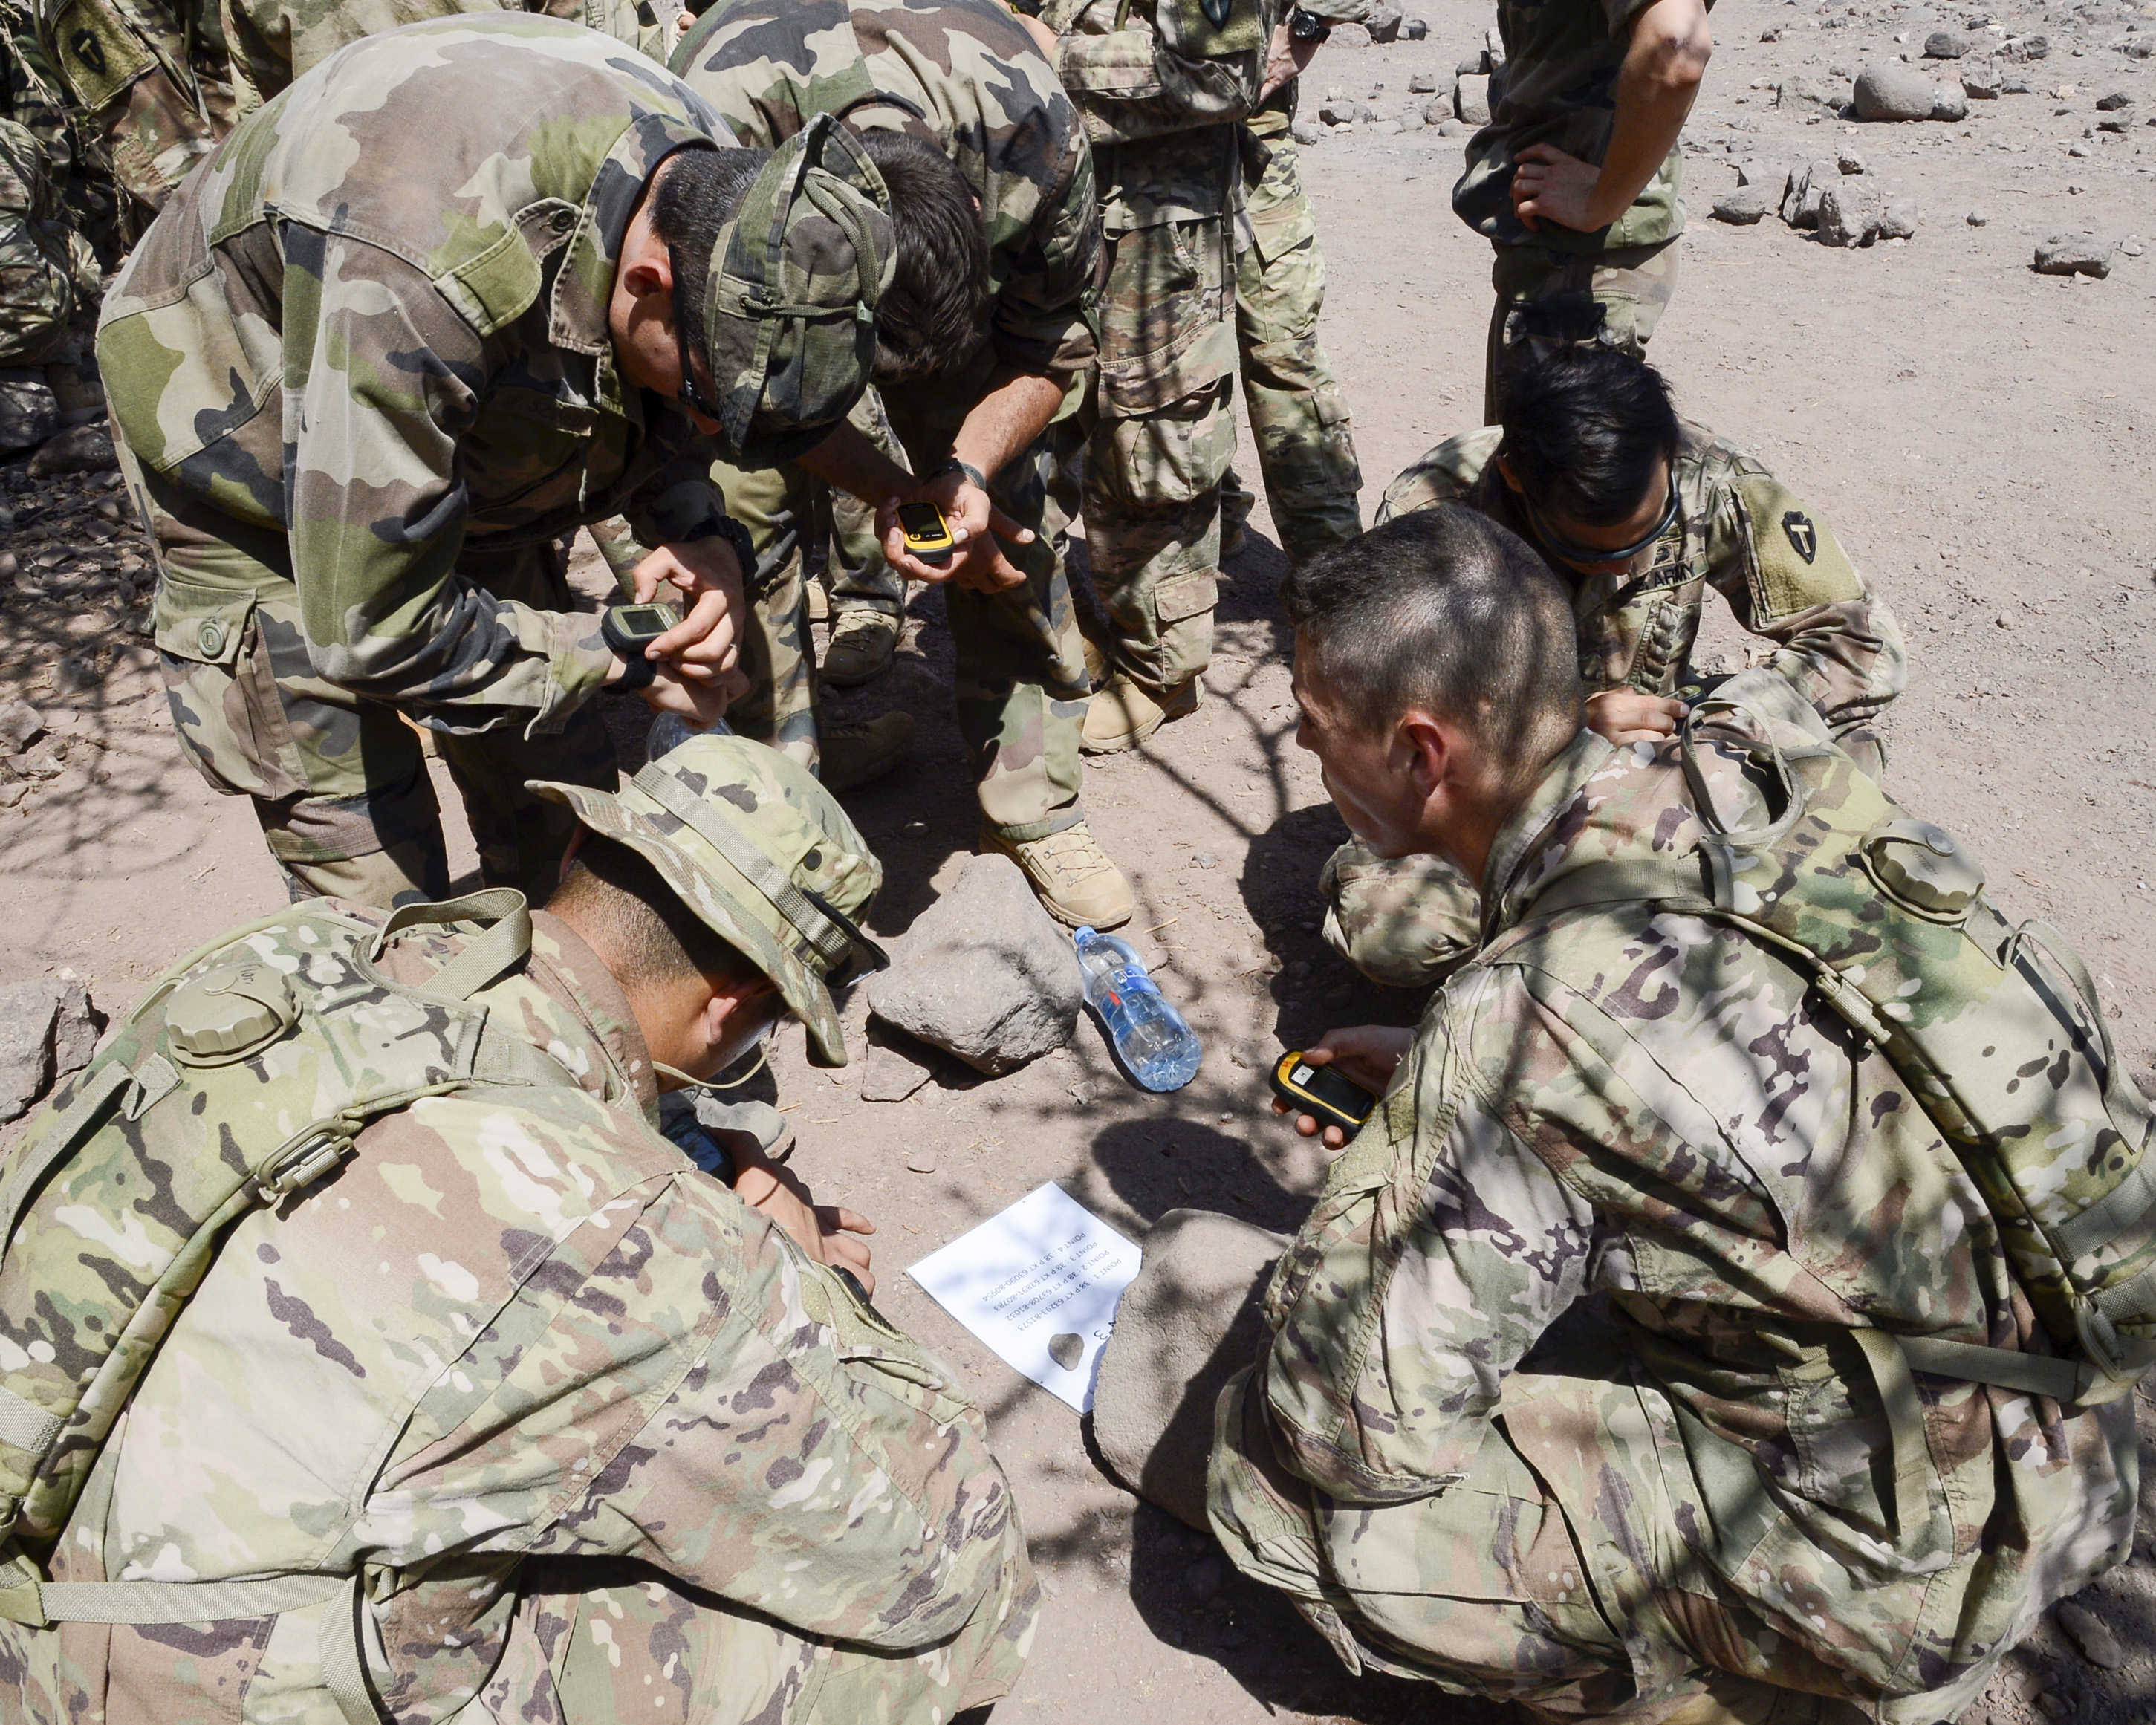 U.S. Army Soldiers alongside French soldiers, deployed to Combined Joint Task Force-Horn of Africa, prepare to start desert land navigation during the French Desert Commando Course at the Centre Dentrainment Au Combat Djibouti in Arta Plage, Djibouti, April 21, 2018.  The four-day phase is the first of two necessary to earn a coveted French Desert Commando Badge. (U.S. Navy Photo by Mass Communication Specialist 2nd Class Timothy M. Ahearn)